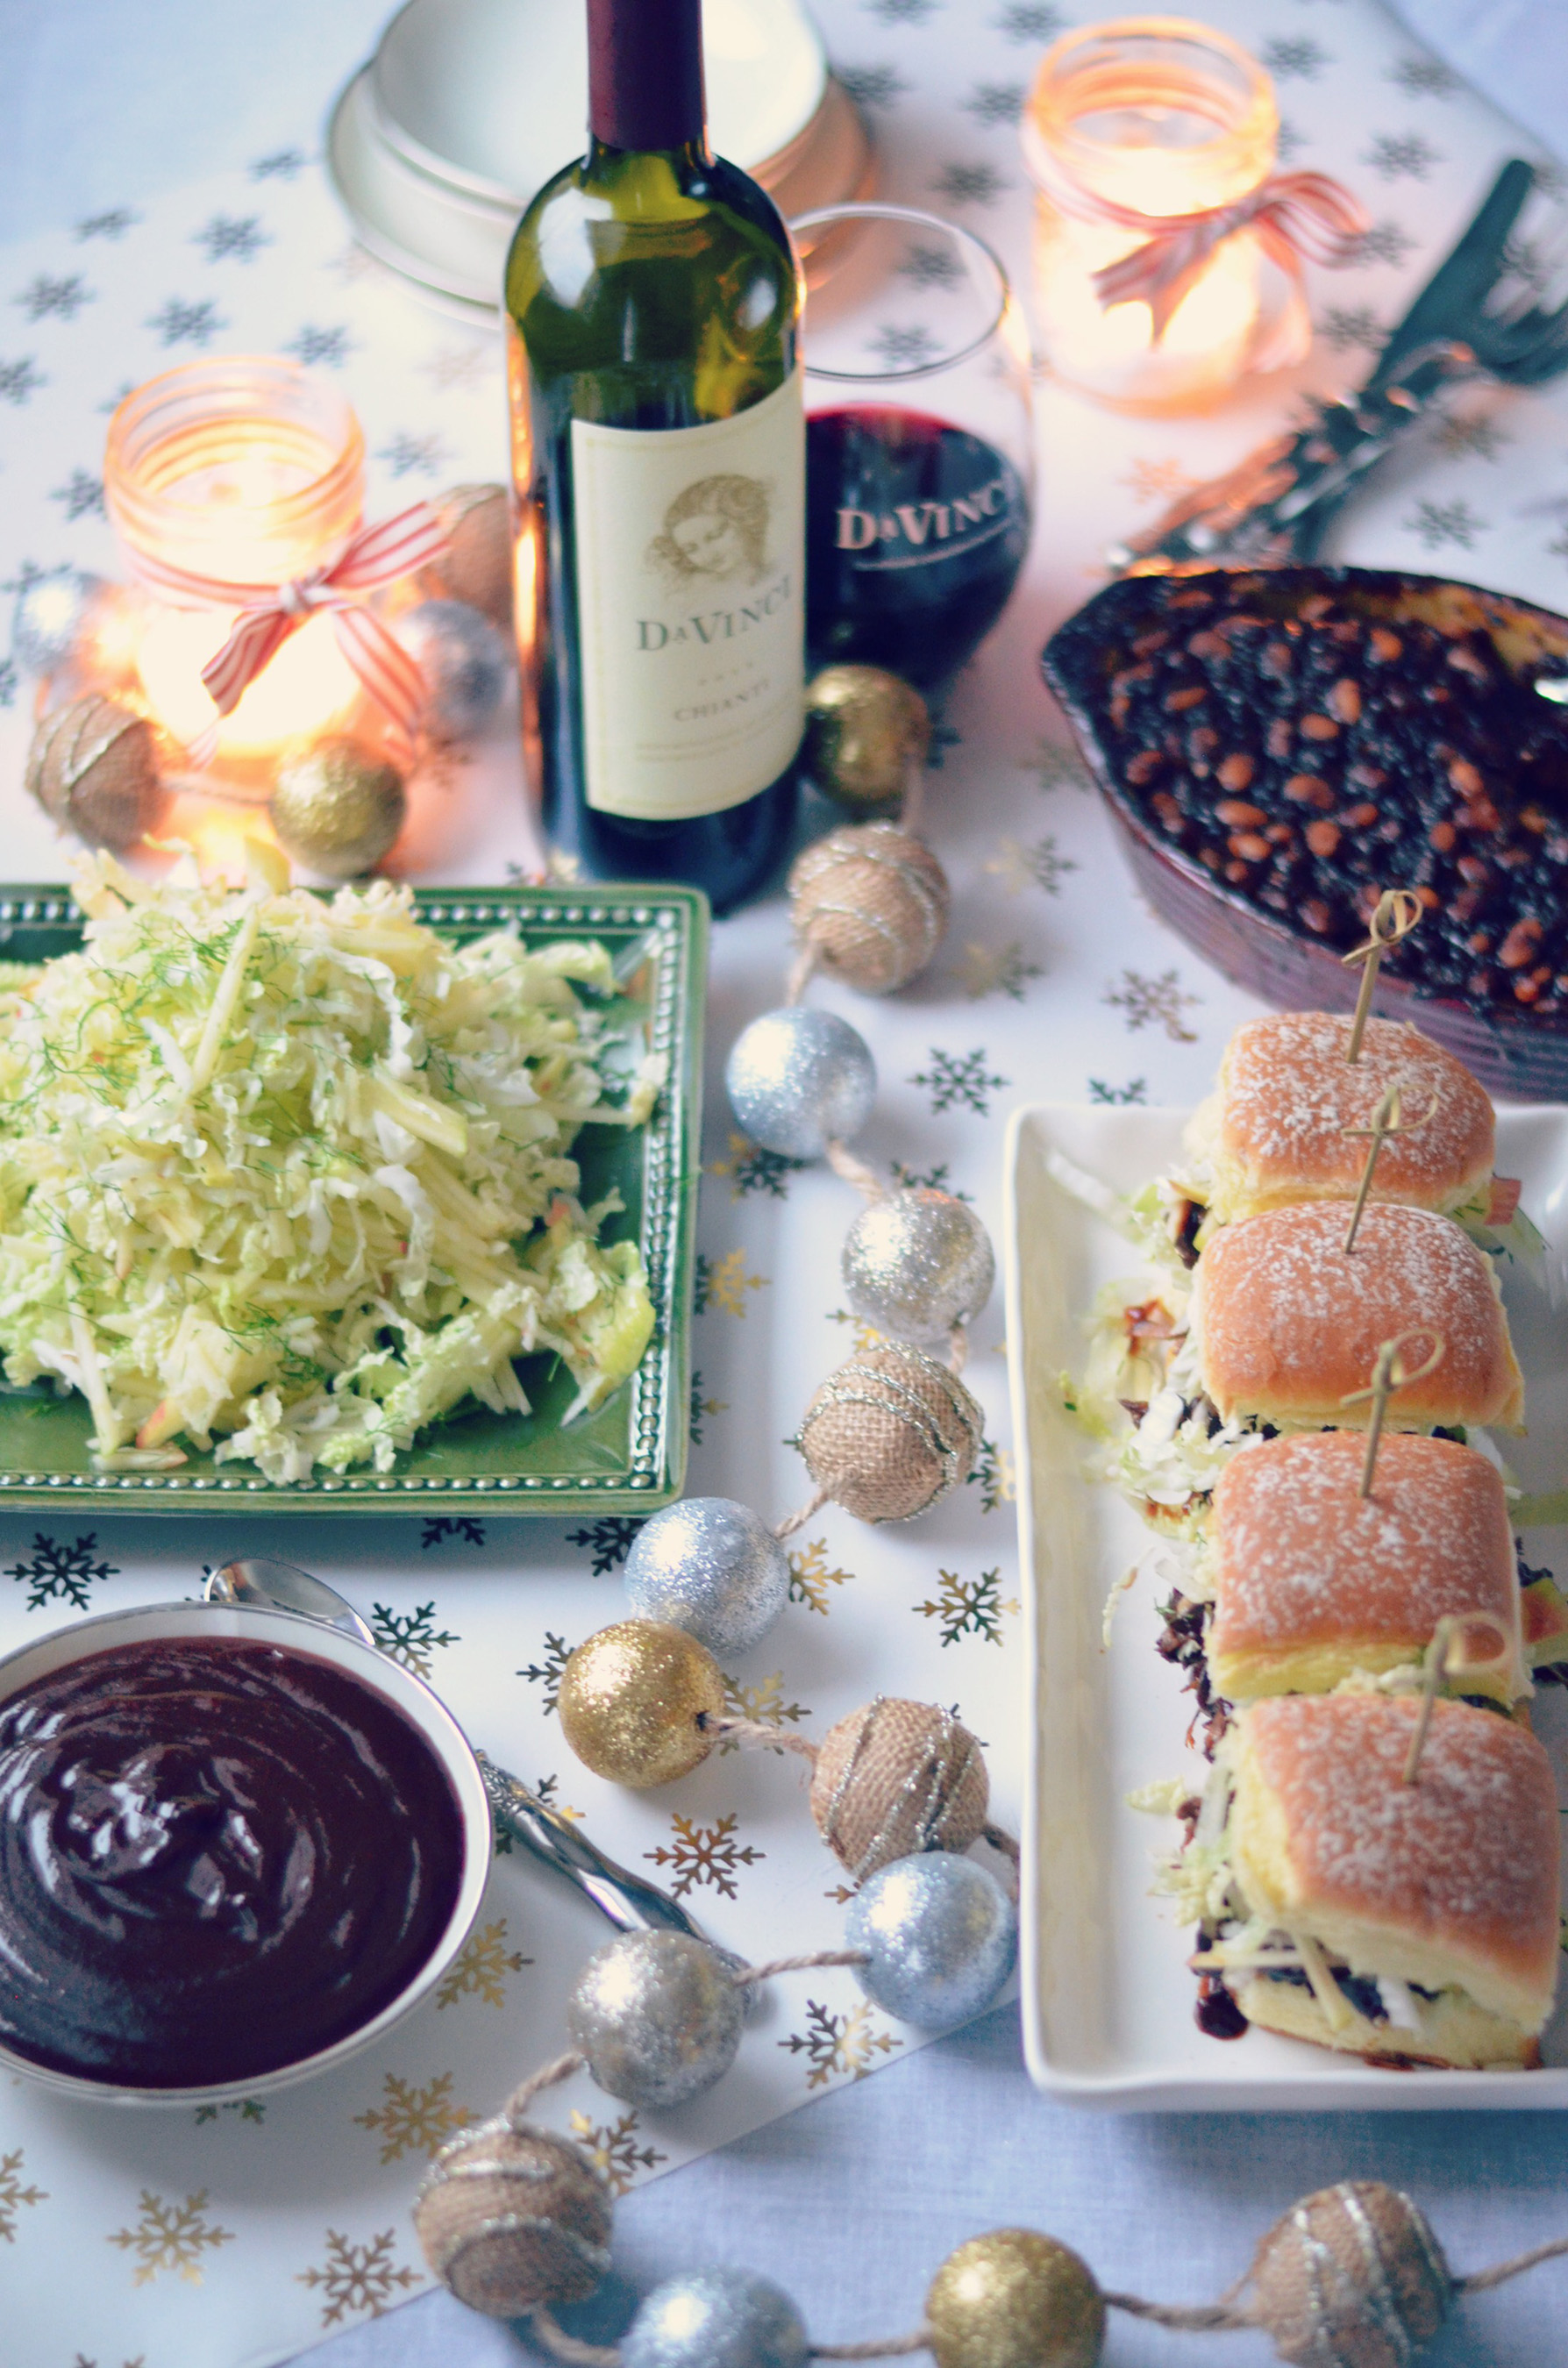 A holiday spread of Southern-Style Pulled Pork with Chianti Barbecue Sauce, Apple Fennel Slaw and Homemade Baked Beans